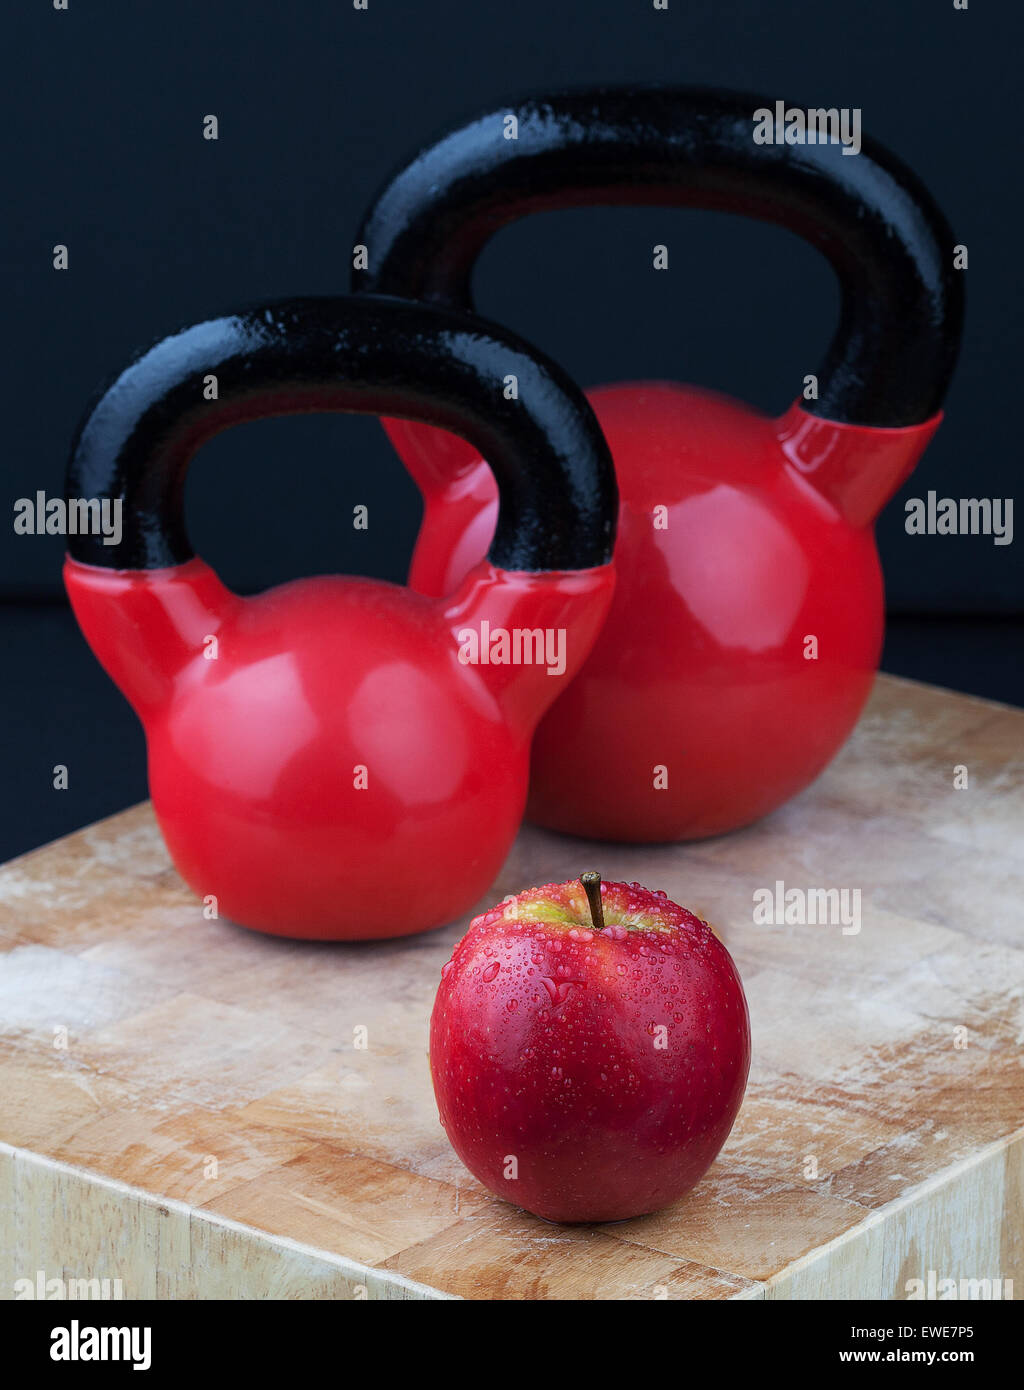 Red apple and kettlebells on chopping board. - Stock Image